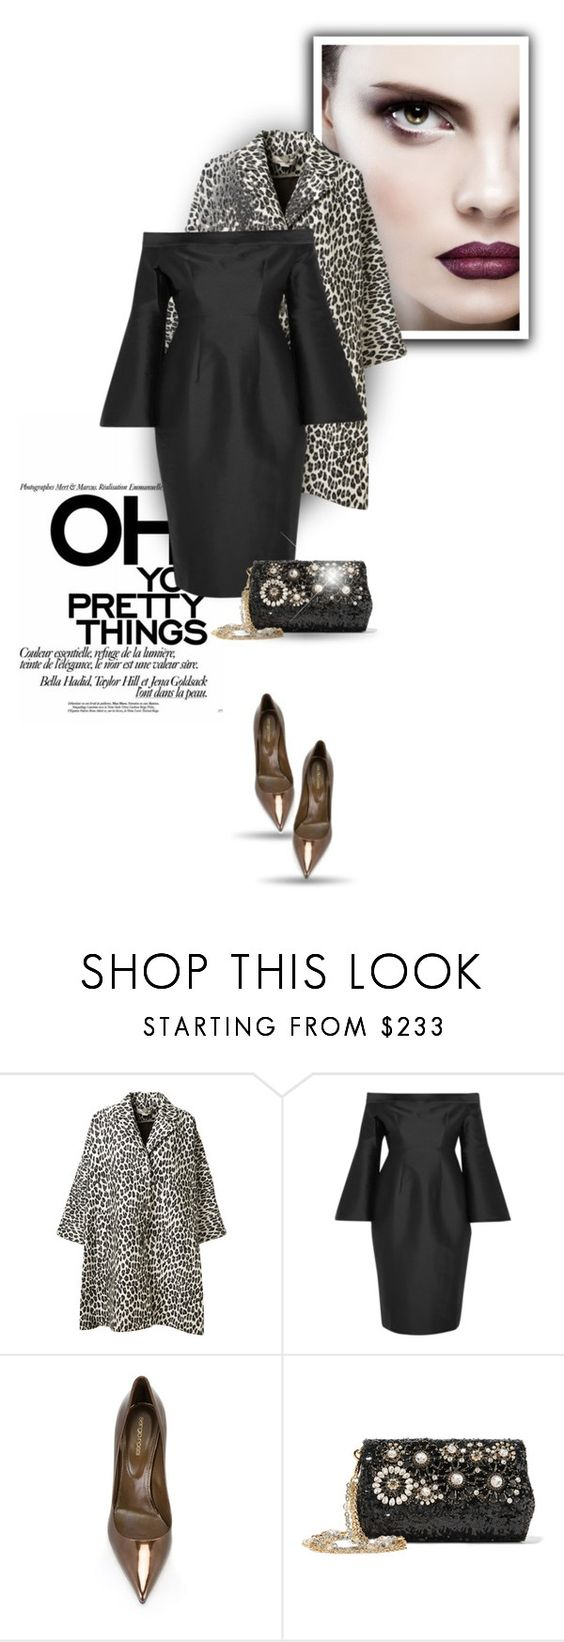 """..."" by bliznec ❤ liked on Polyvore featuring STELLA McCARTNEY, Iris & Ink, Sergio Rossi and Dolce&Gabbana"